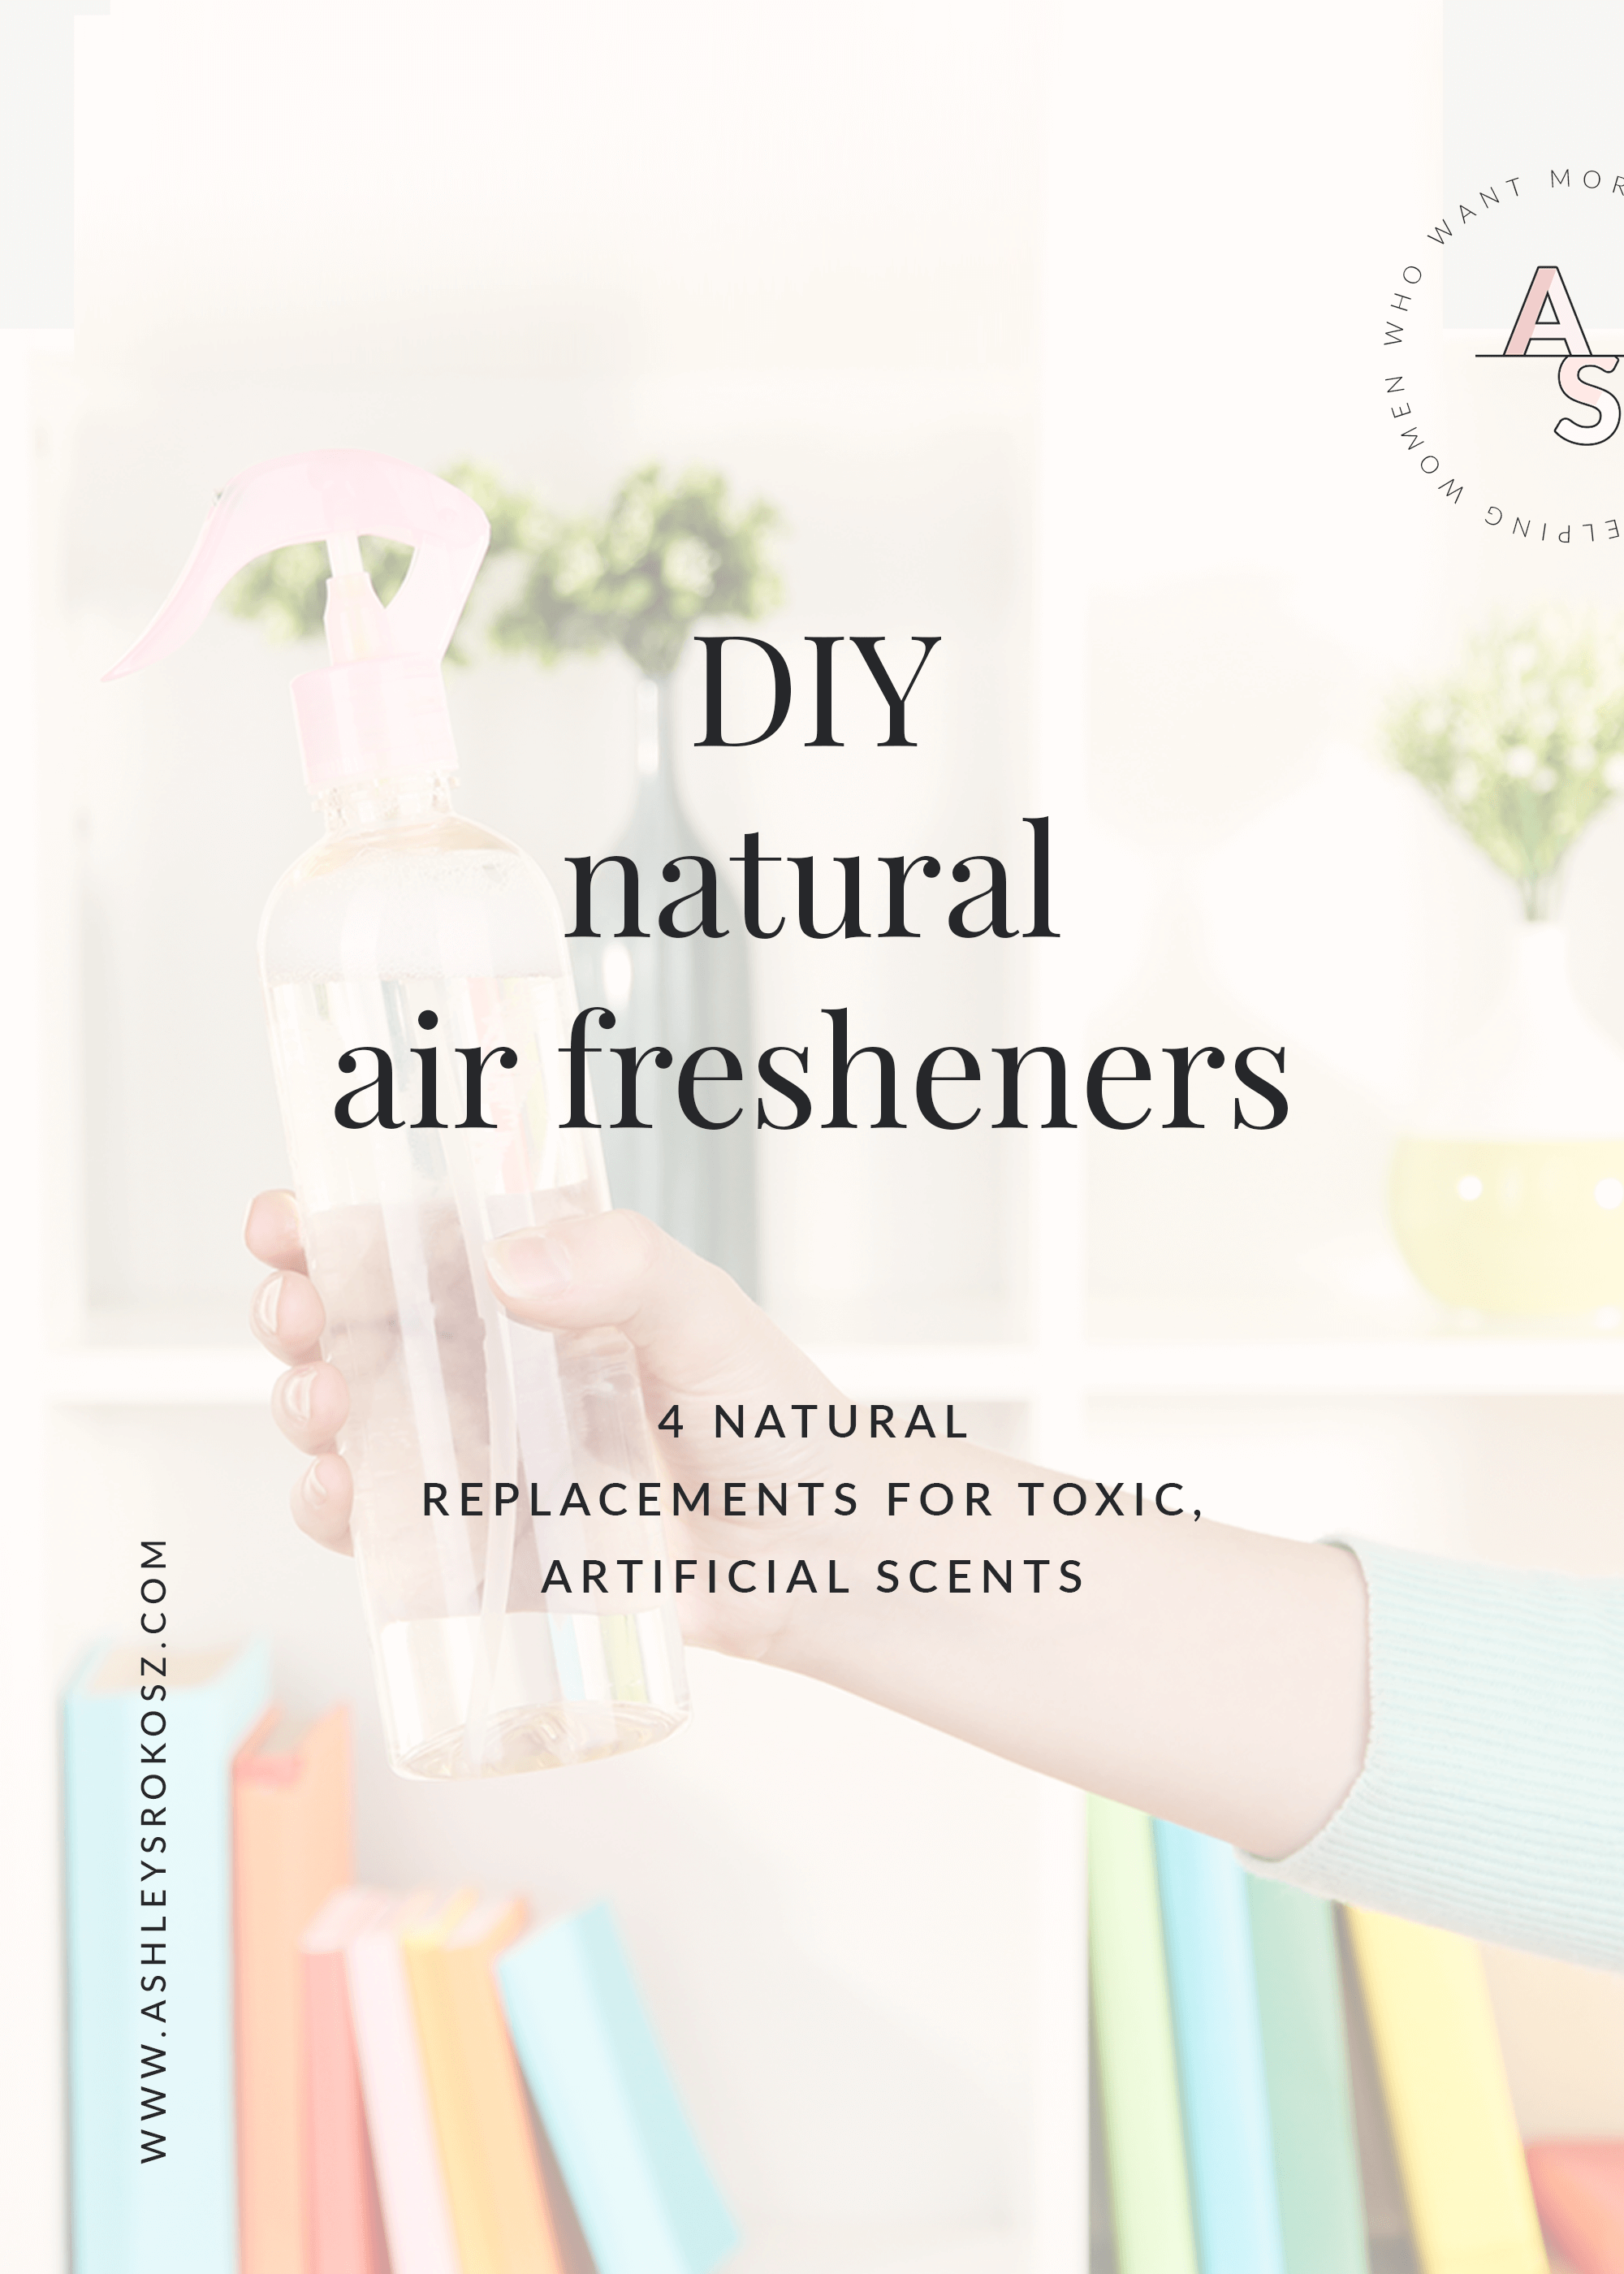 Did you know that artificial air fresheners have been linked to lung infections, eczema, depression, diarrhea and vomiting, and headaches? Crazy, right? Click to read why you should get rid of your candles, wax warmers, and scented plug-ins, and 4 DIY natural air fresheners you can use instead. PLUS there's a free download with 35+ essential oil combos! #airfreshenerDIY #airfreshenerDIYessentialoils #airfreshener #airfresheneressentialoils #airfreshenerDIYodoreliminator